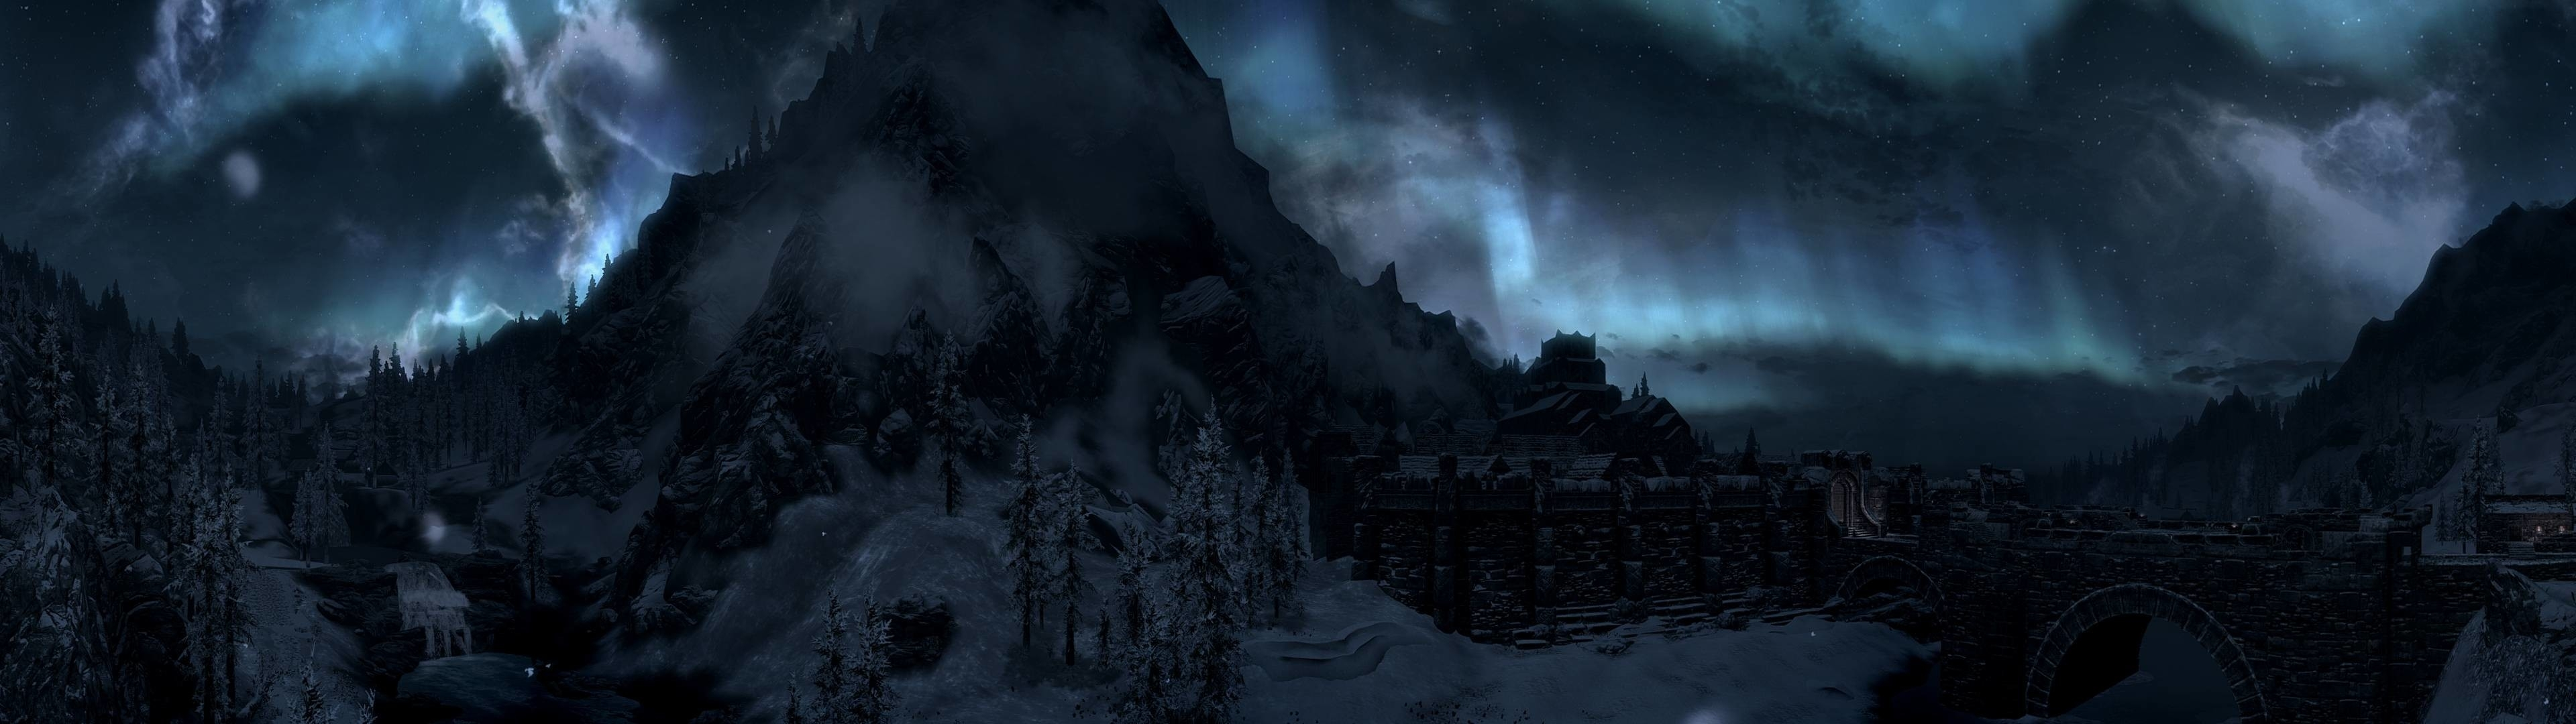 skyrim dual monitor wallpaper (39+ images)